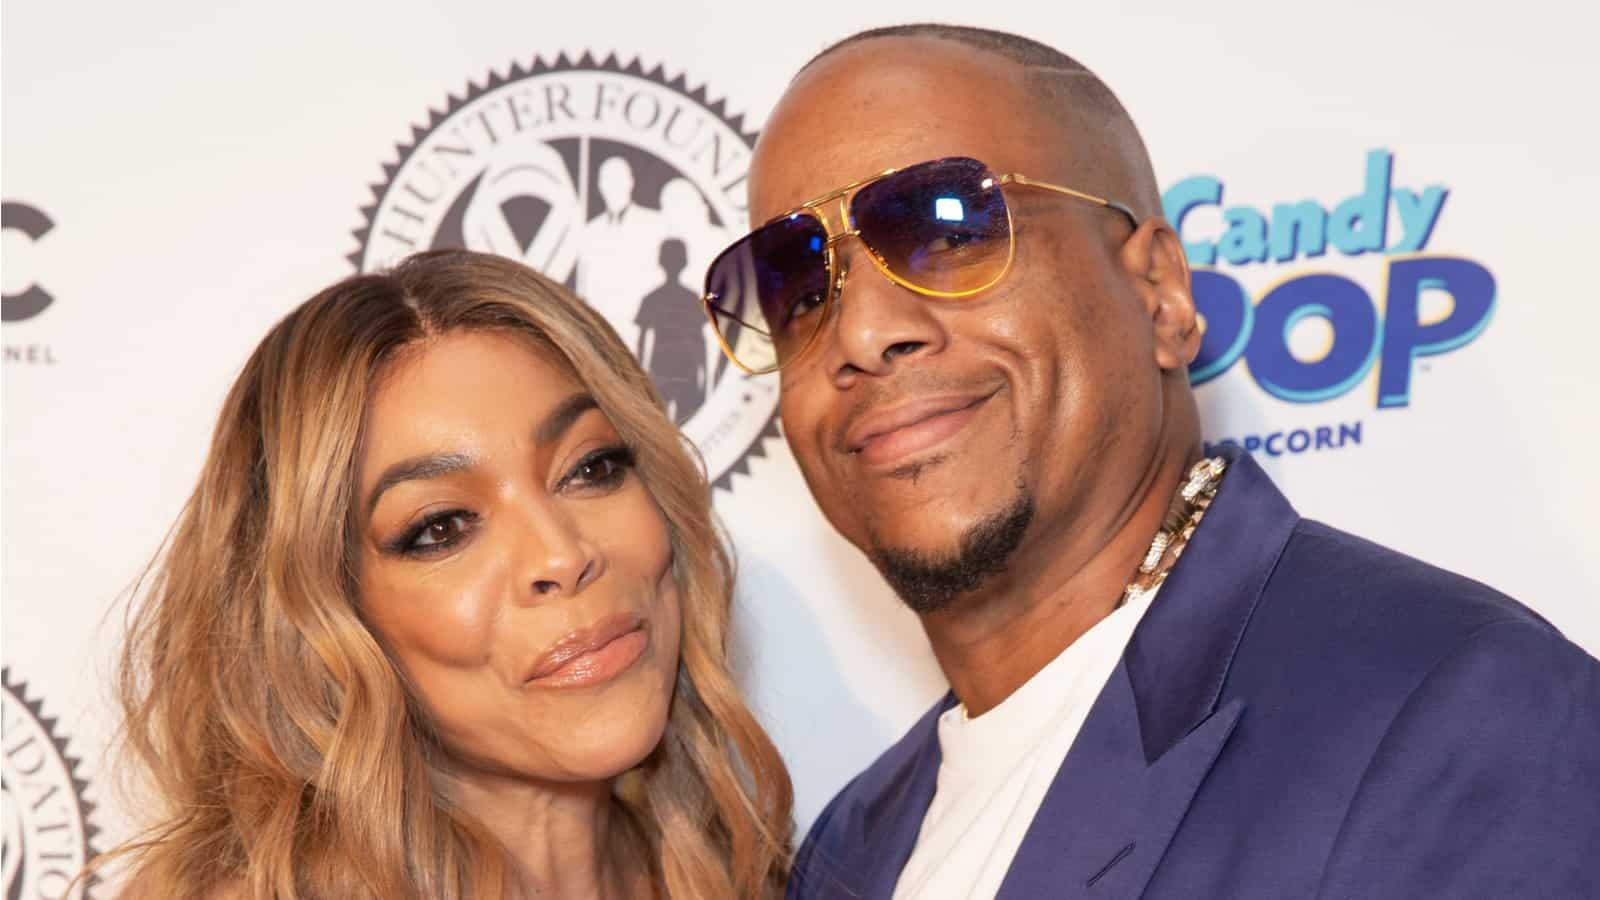 Wendy Williams And Husband Kevin Hunter Heading For A Divorce? - Here's The Truth!